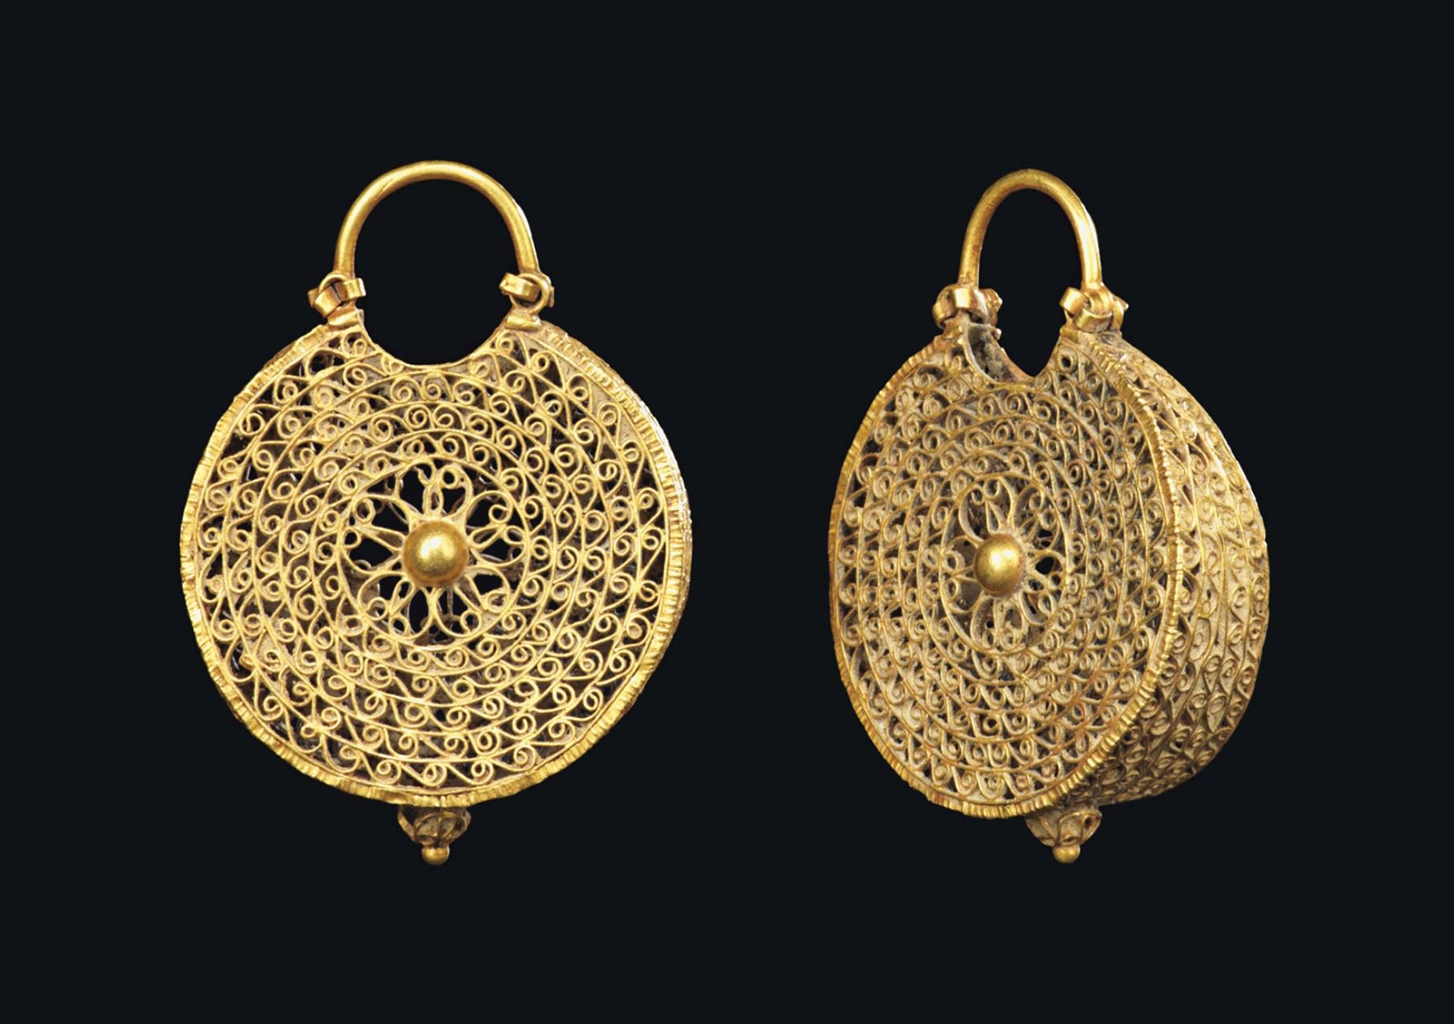 A PAIR OF FATIMID GOLD EARRING